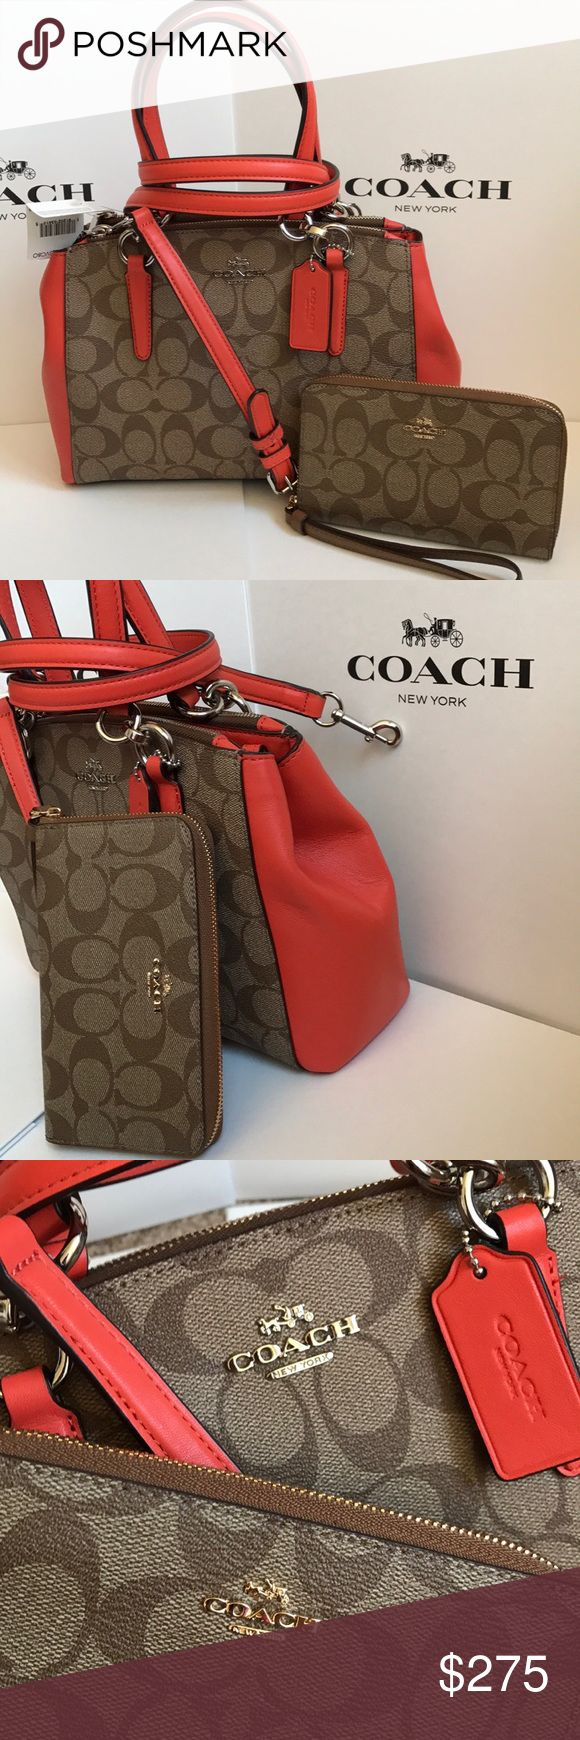 💕💥coach Satchel set💕 Both authentic brand new with tags. Khaki saddle signature color. Purse has removable strap. Silver hard wear, wallet/wristlet gold hard wear. Coach Bags Satchels